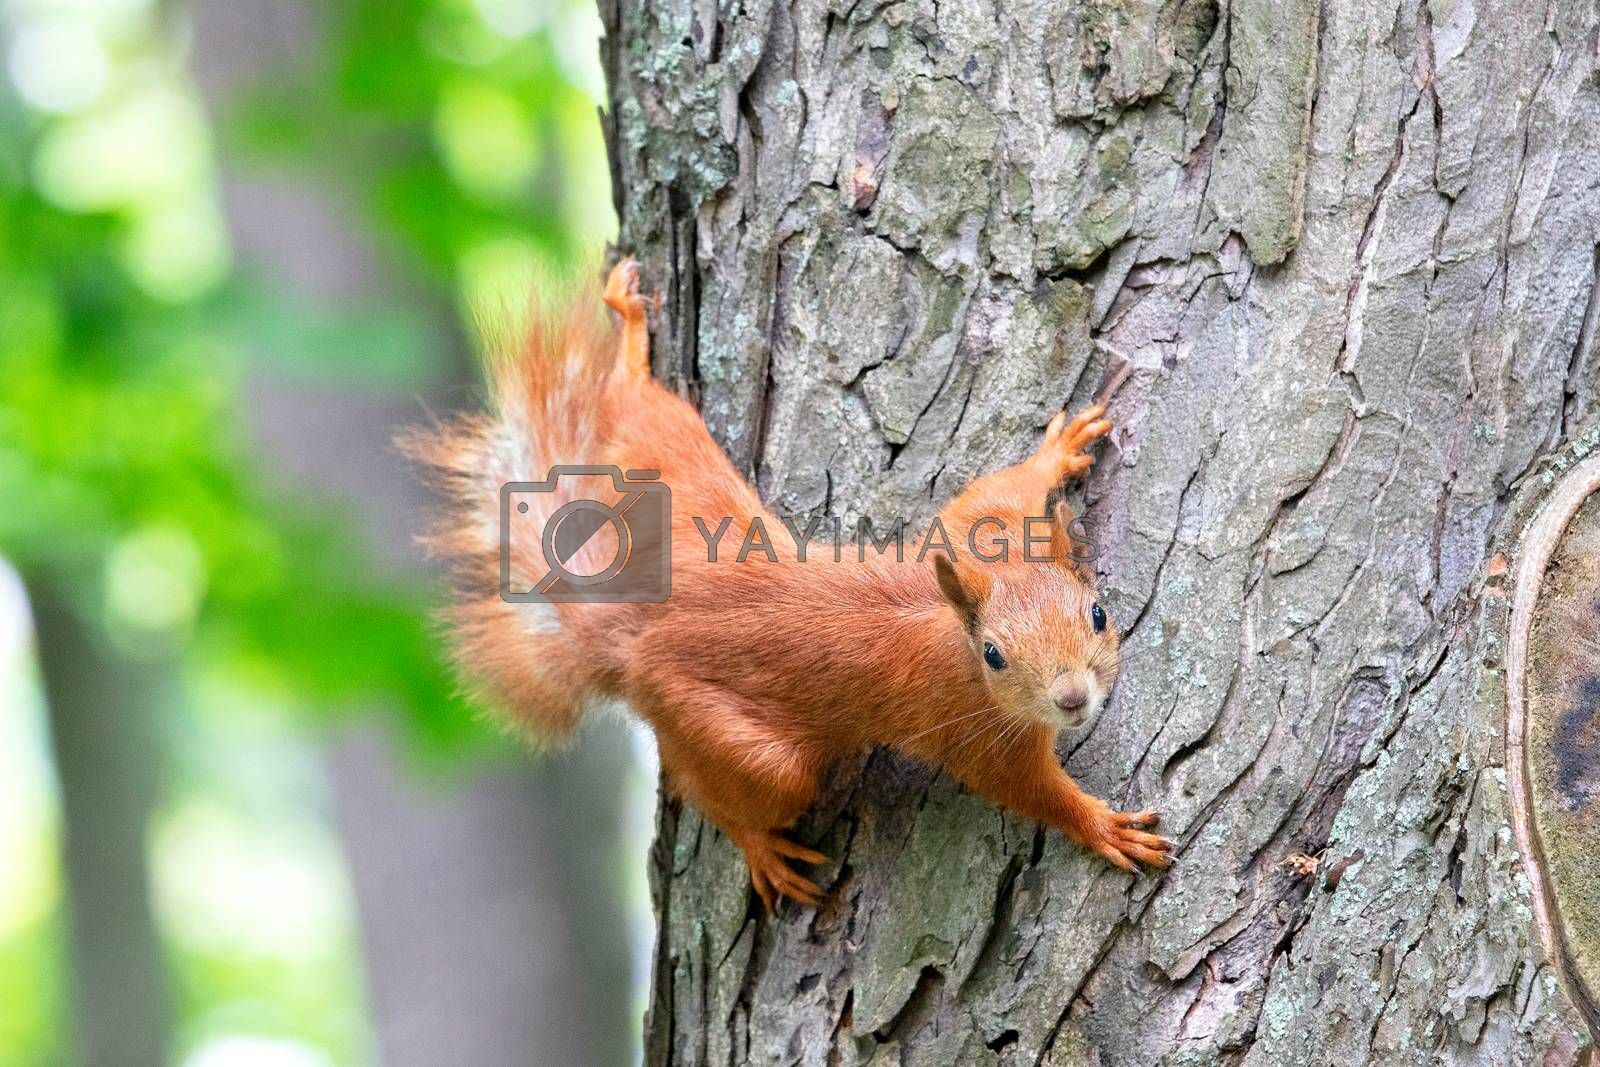 Orange fluffy squirrel carefully looks forward, clinging with sharp claws on its paws to the trunk of a tree, selective focus.